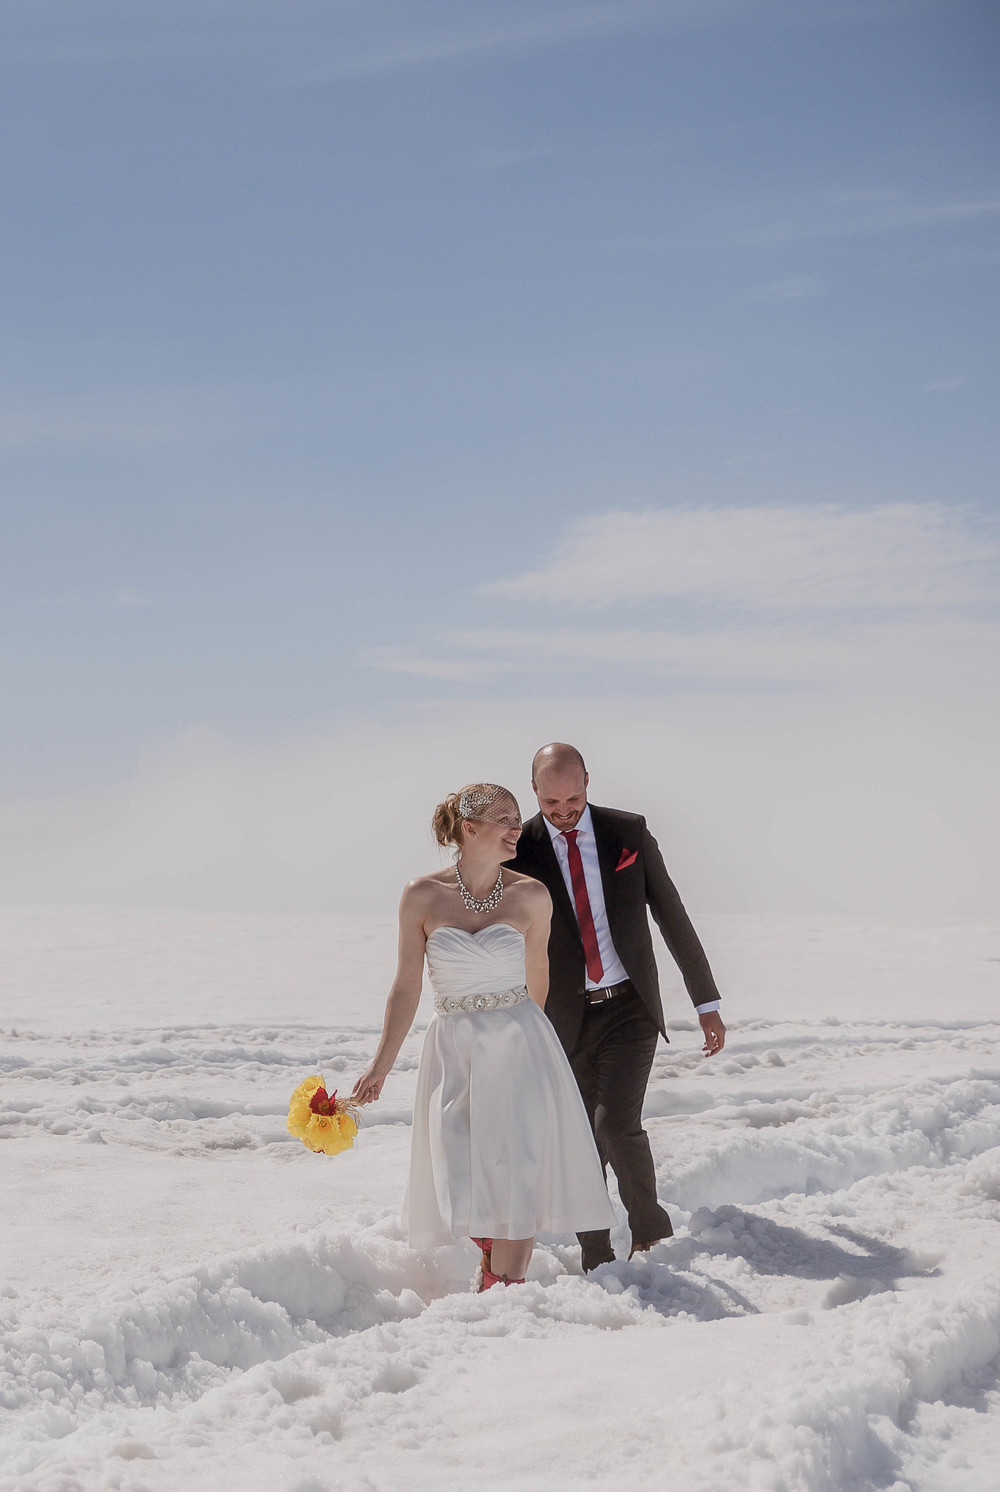 Iceland Glacier Wedding Photos by Miss Ann-8.jpg